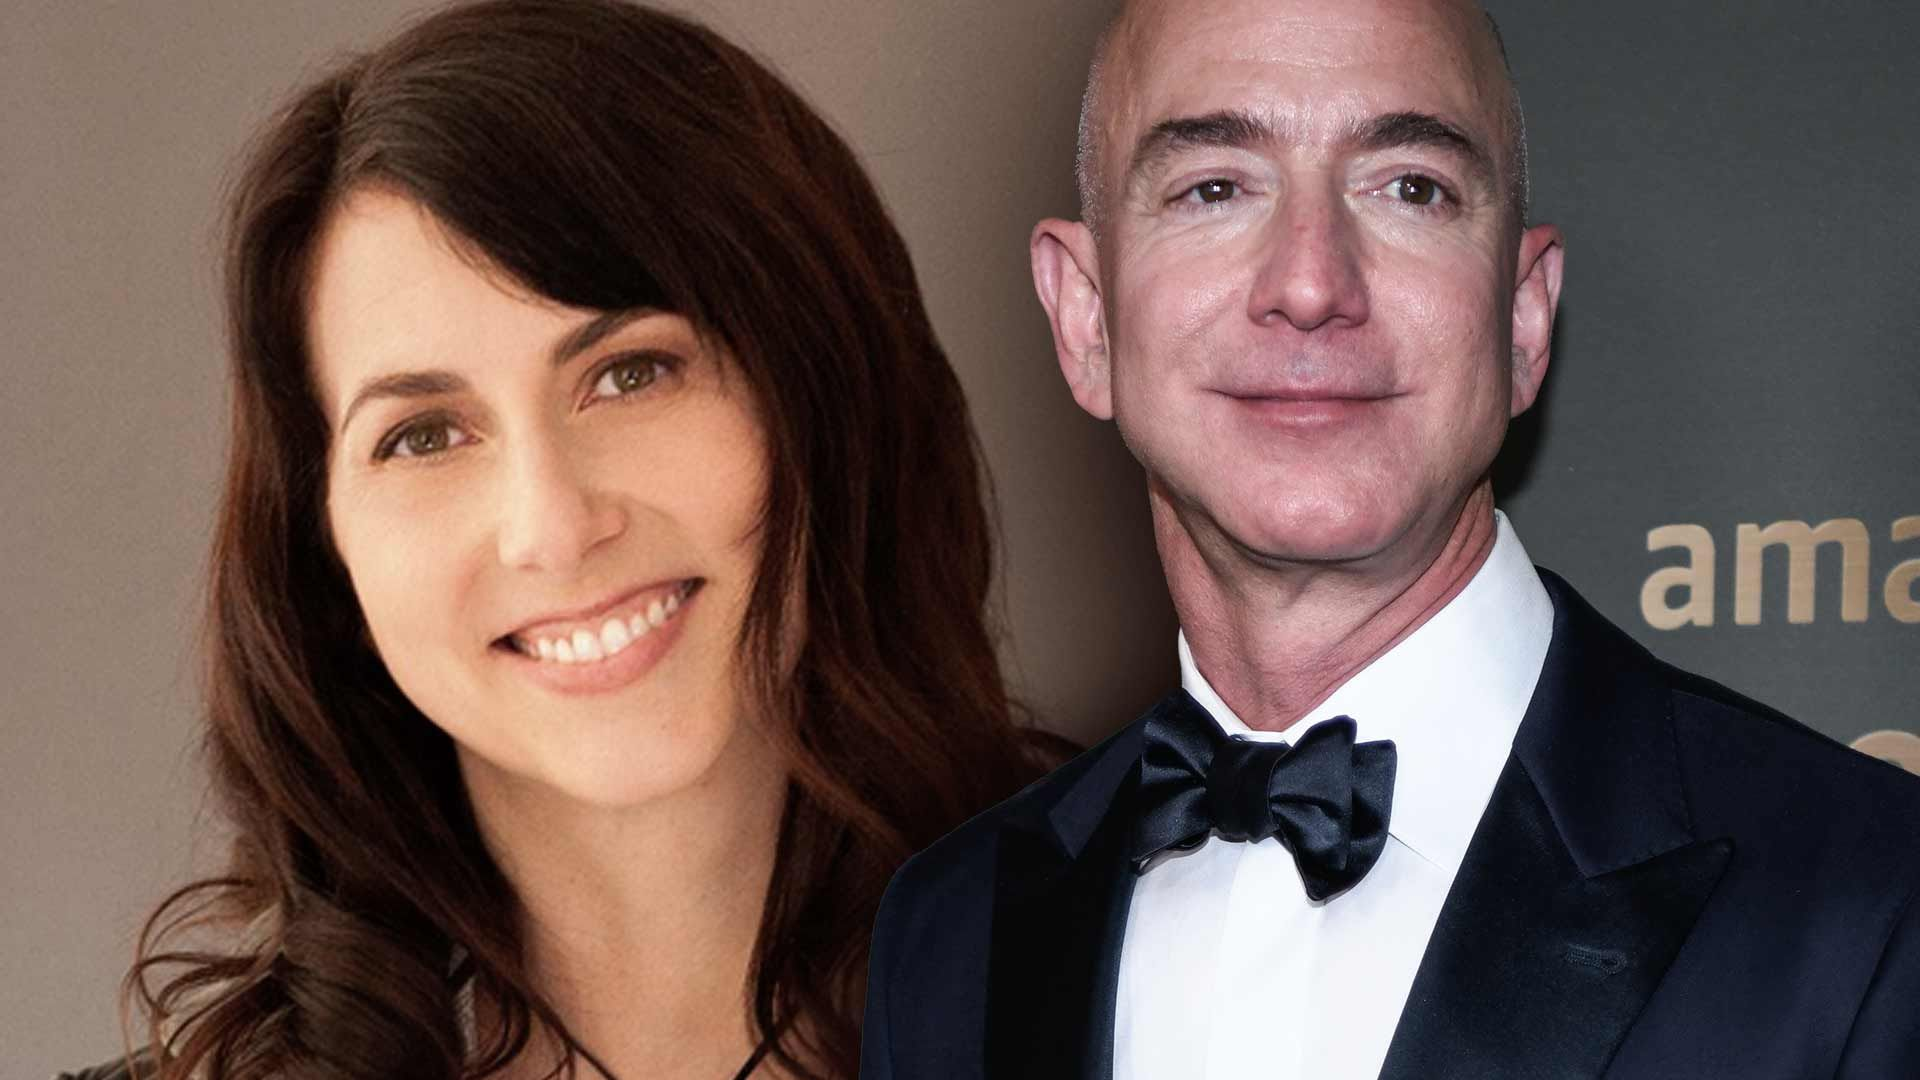 MacKenzie Bezos: Hi Y'all, I Joined Twitter! And I'm Rich After